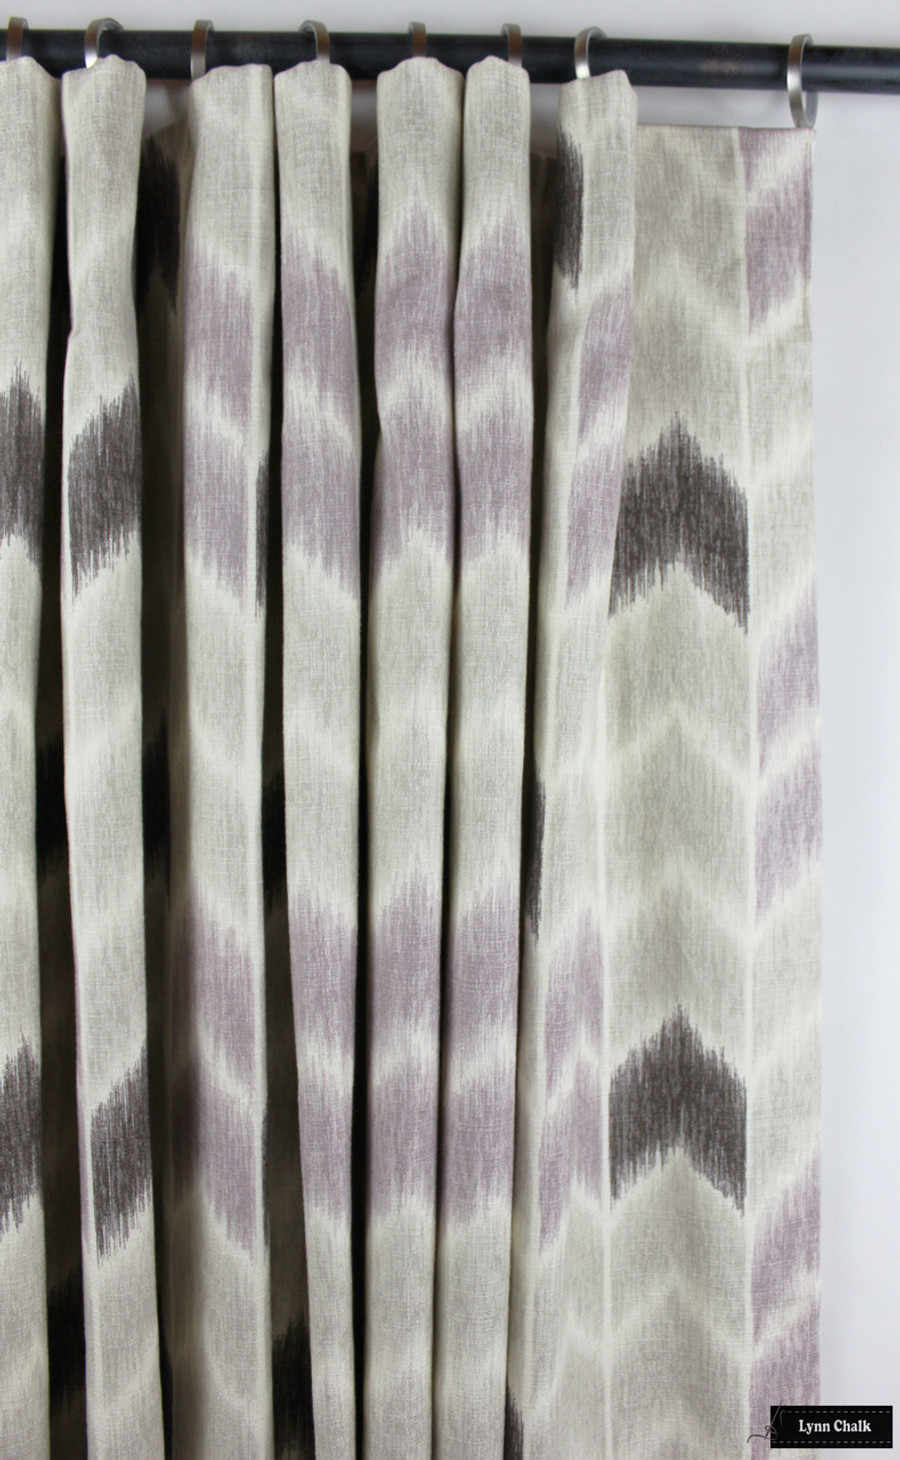 Custom Drapes with Cartridge Pleats in Fabricut Noho Lavender